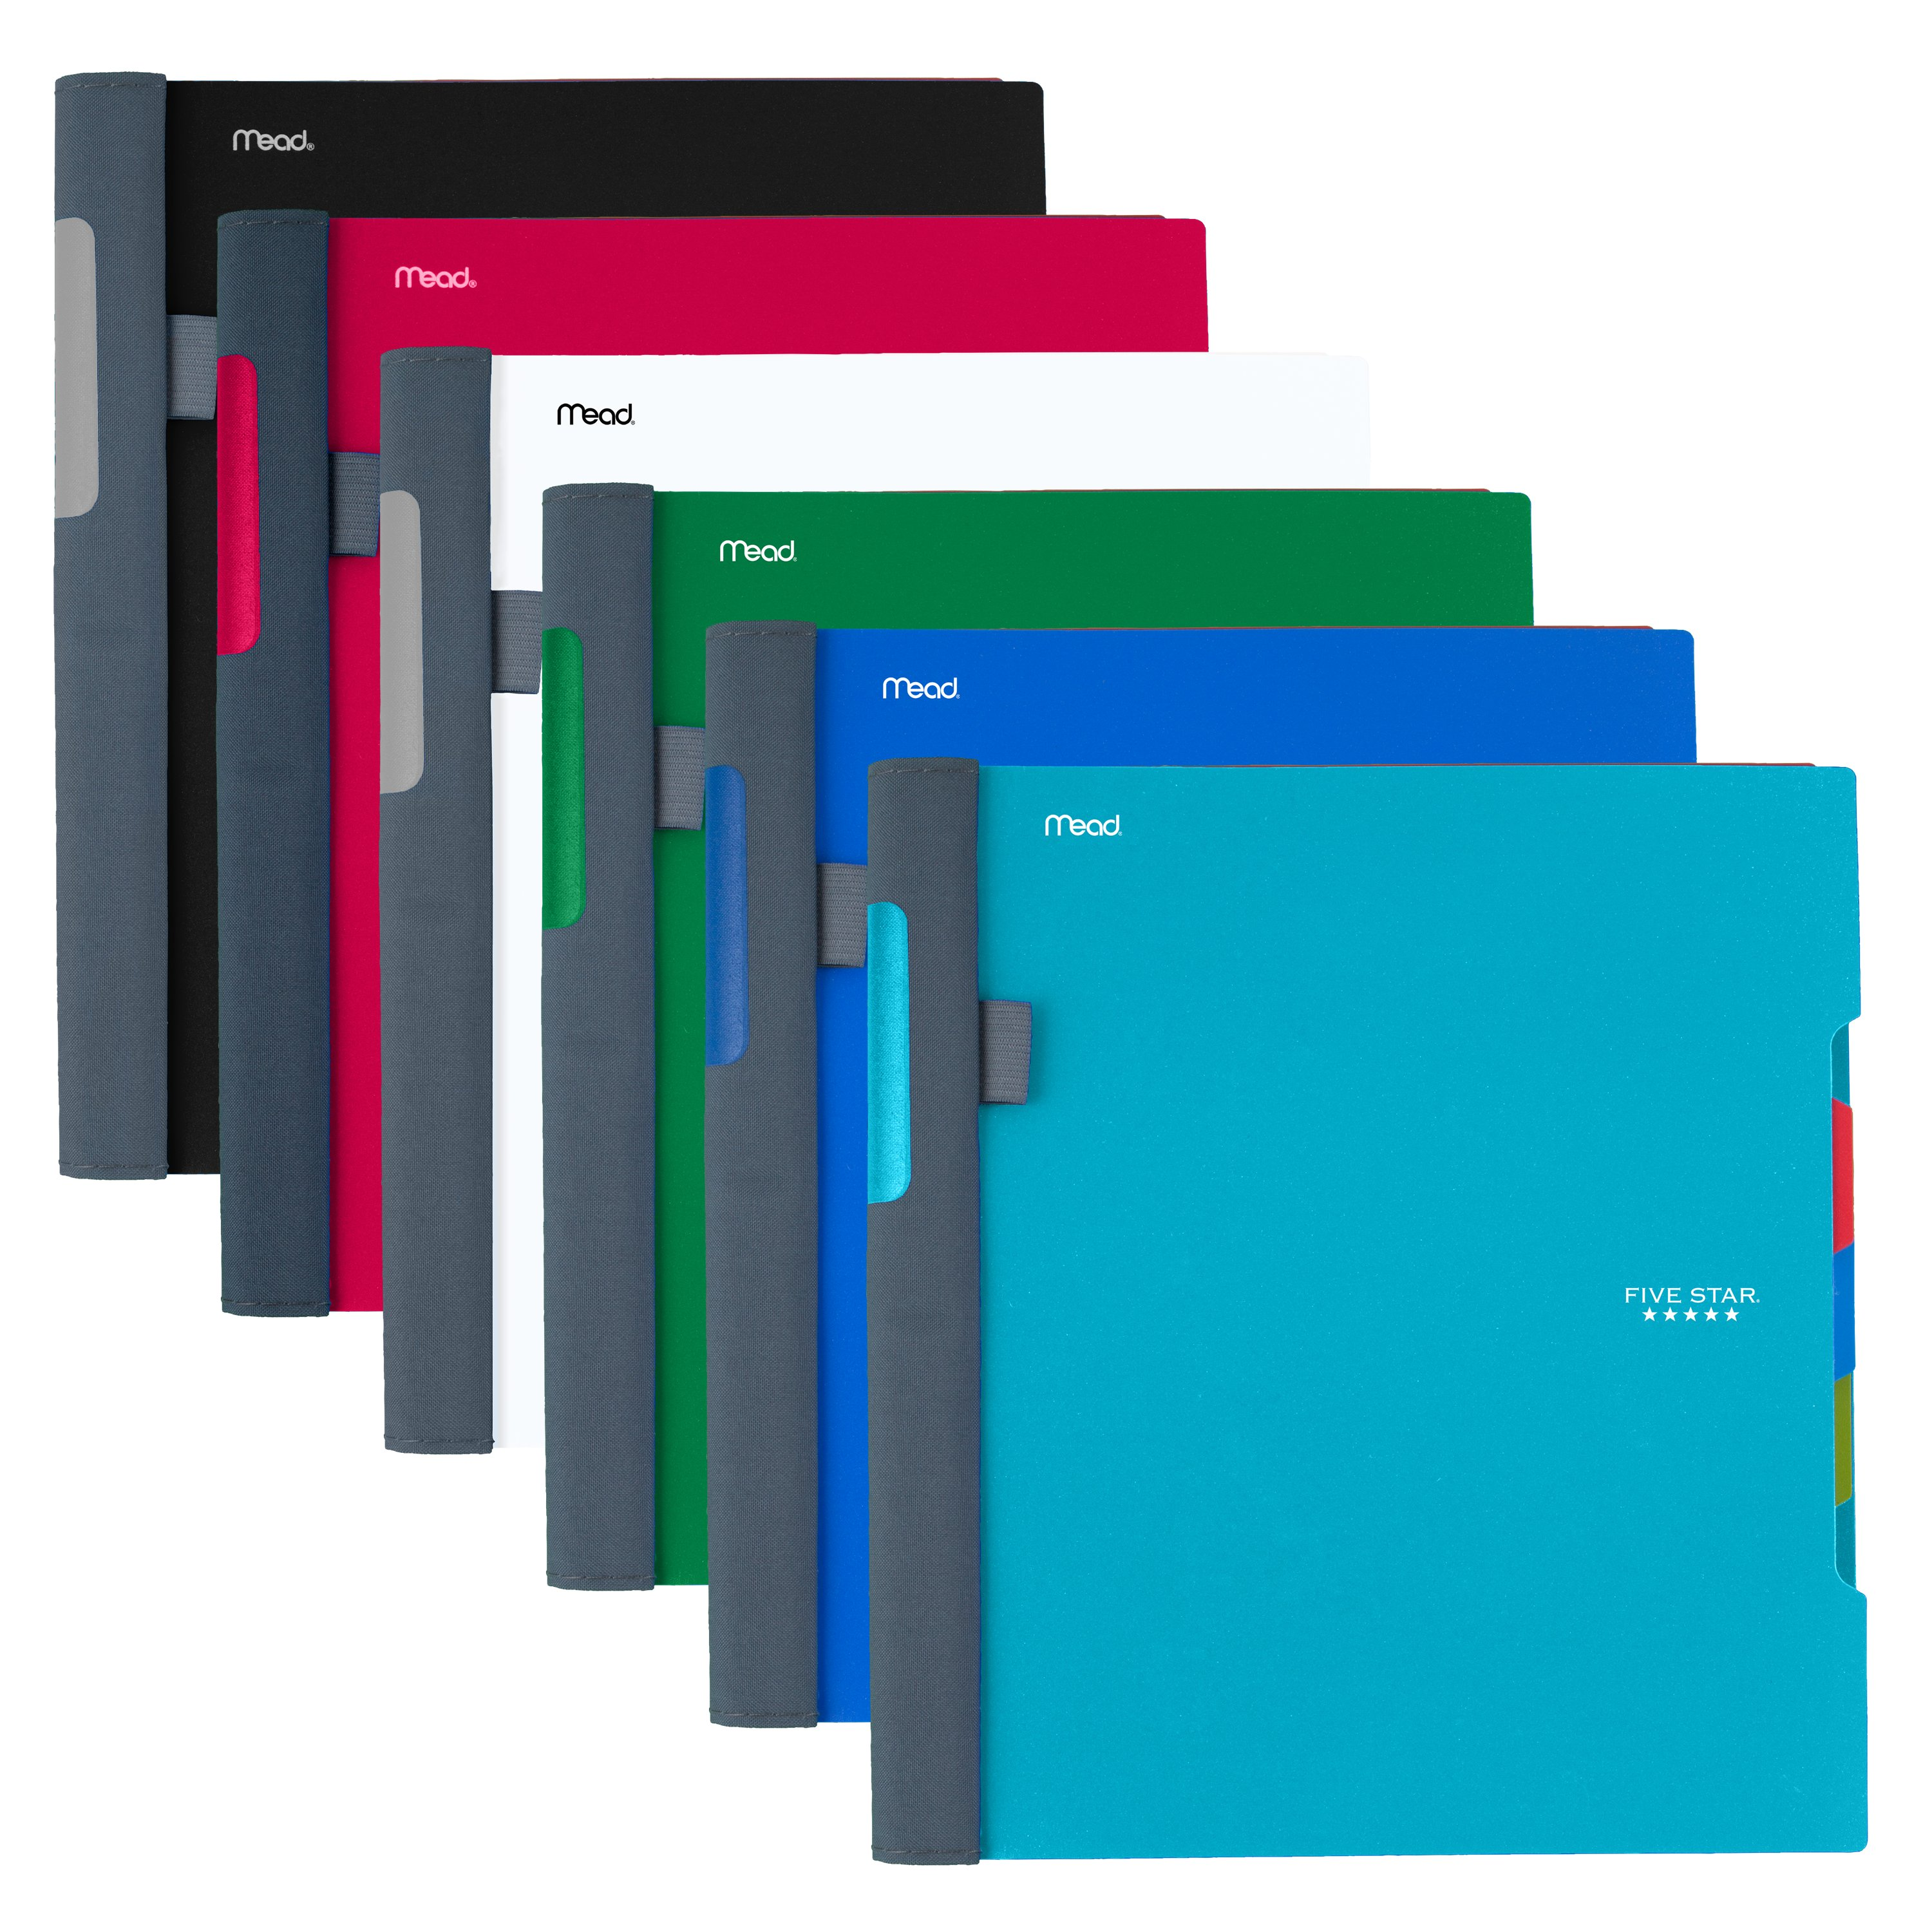 "Five Star Advance Wirebound Notebook, 1 Subject, College Ruled, 11"" x 8 1/2"", Assorted Colors (11133)"